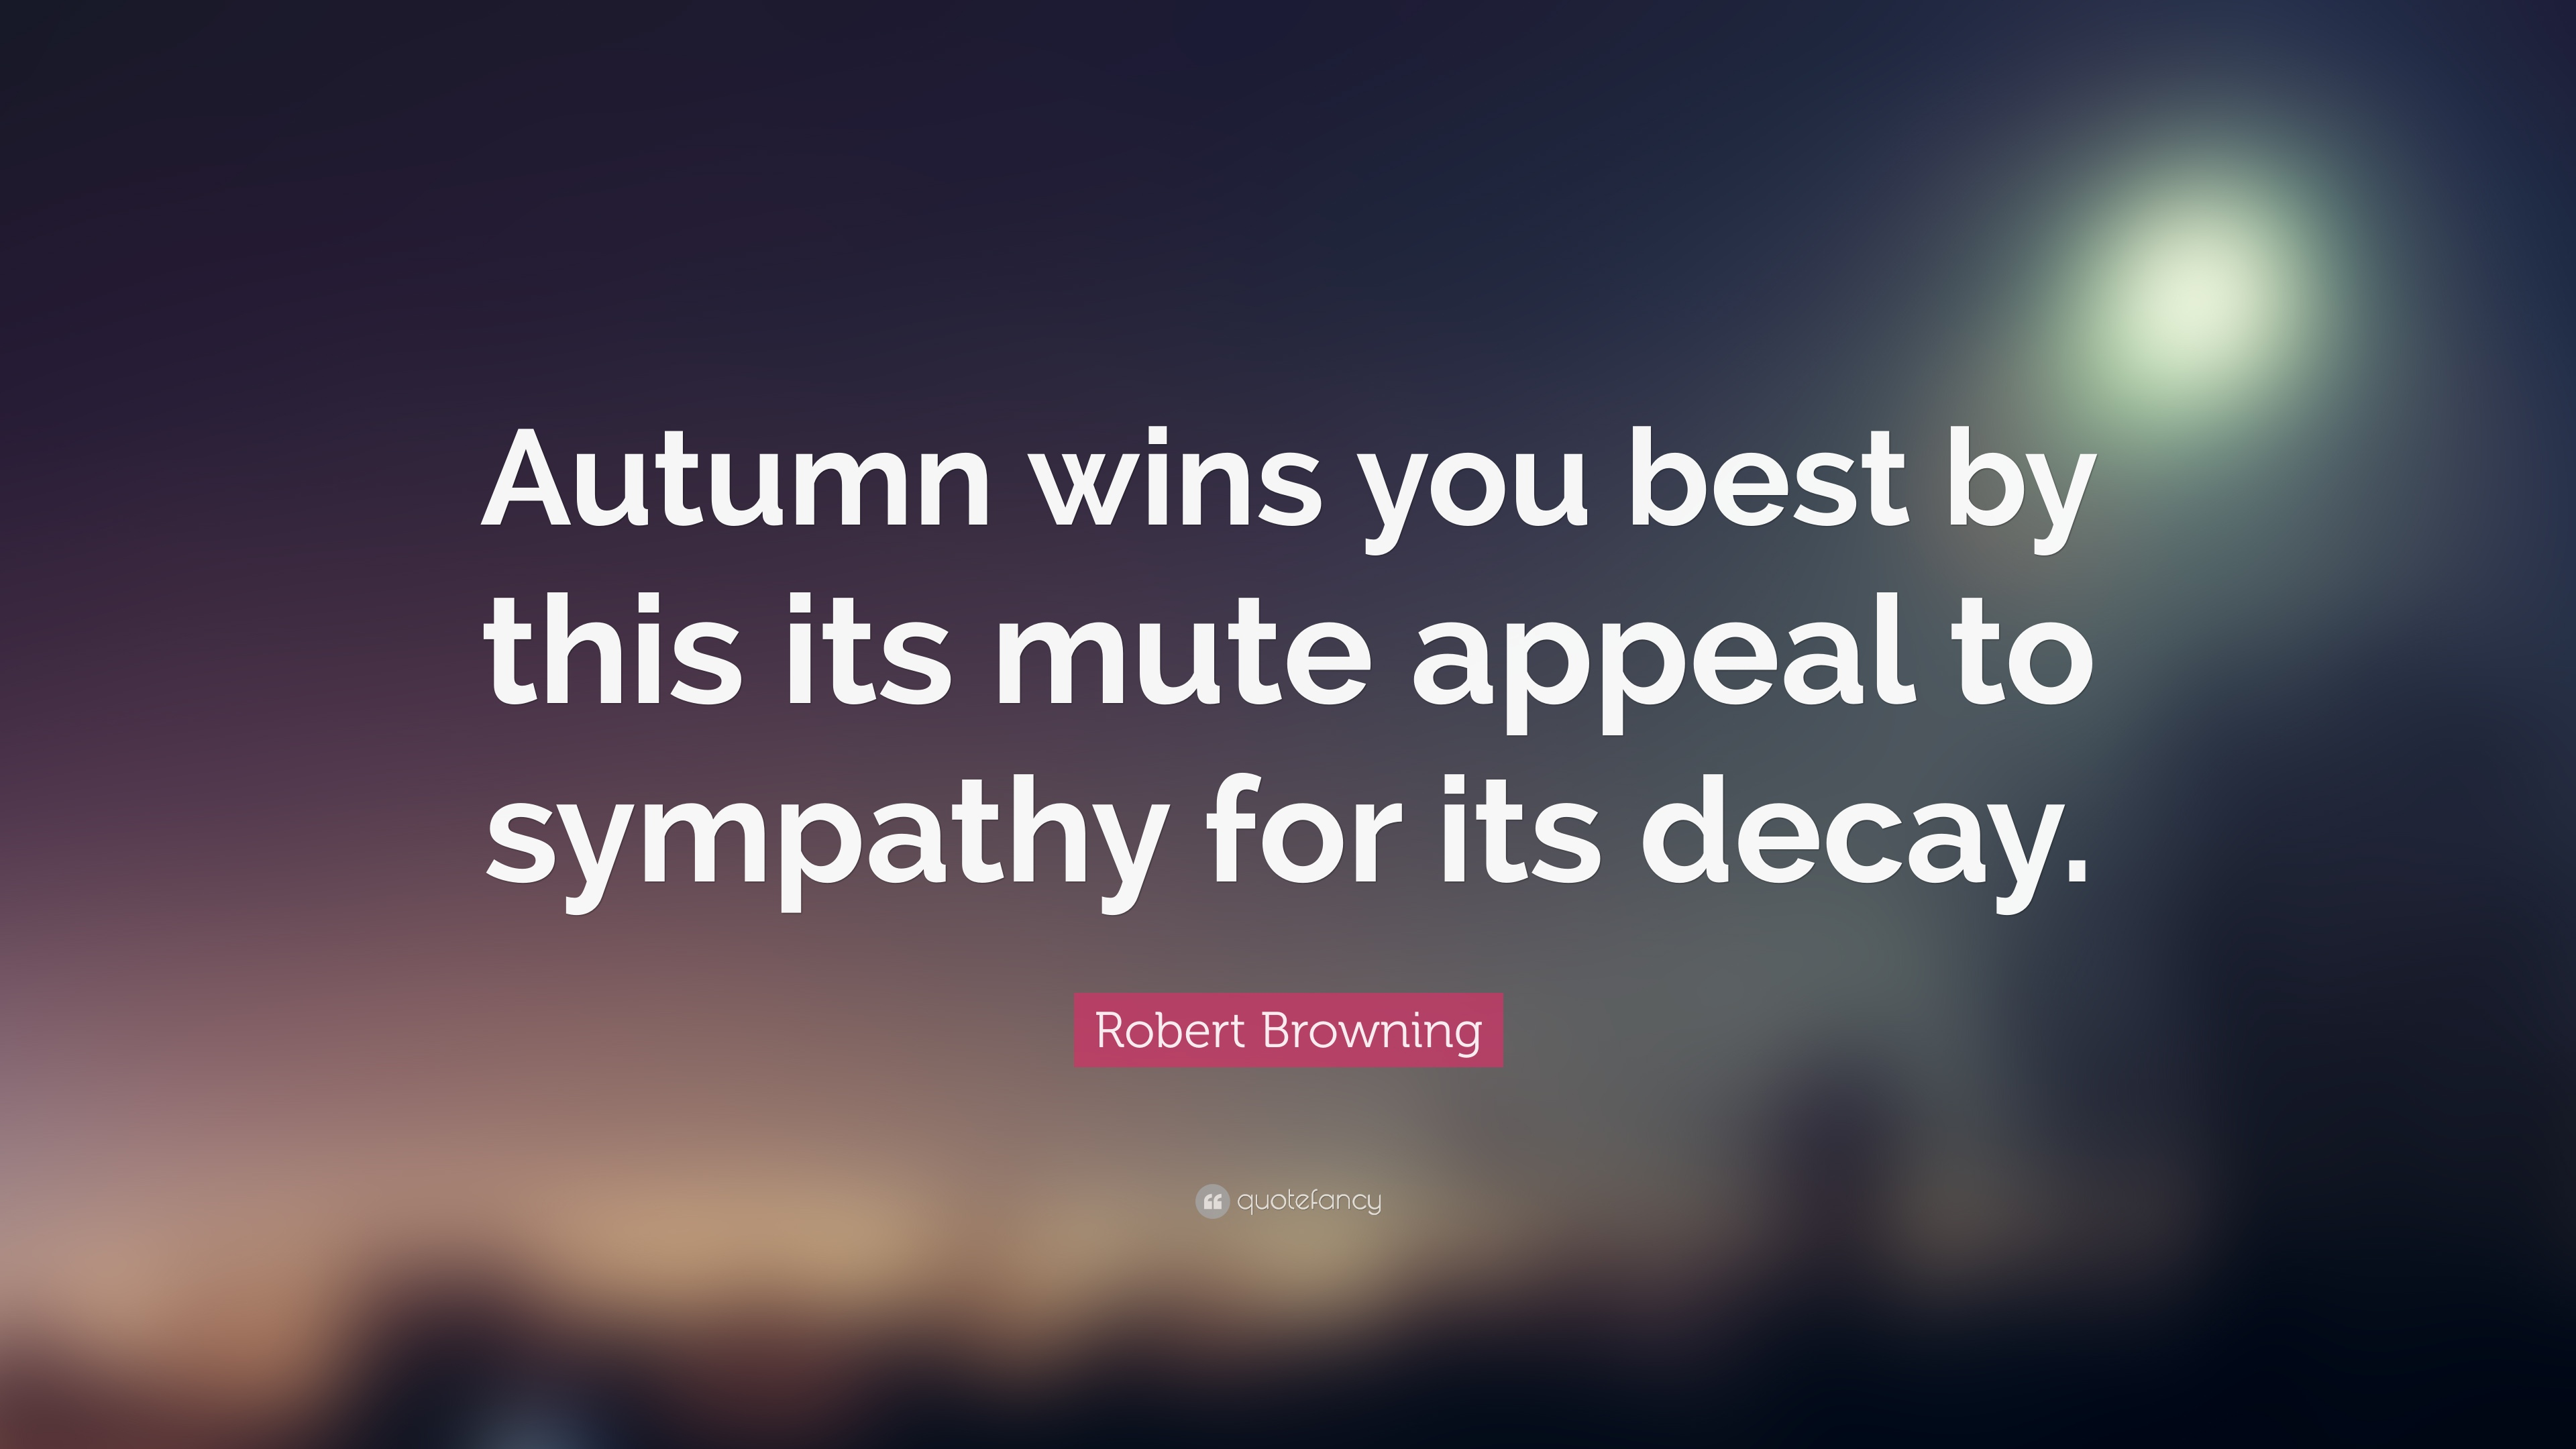 Robert browning quote autumn wins you best by this its mute appeal robert browning quote autumn wins you best by this its mute appeal to sympathy thecheapjerseys Gallery